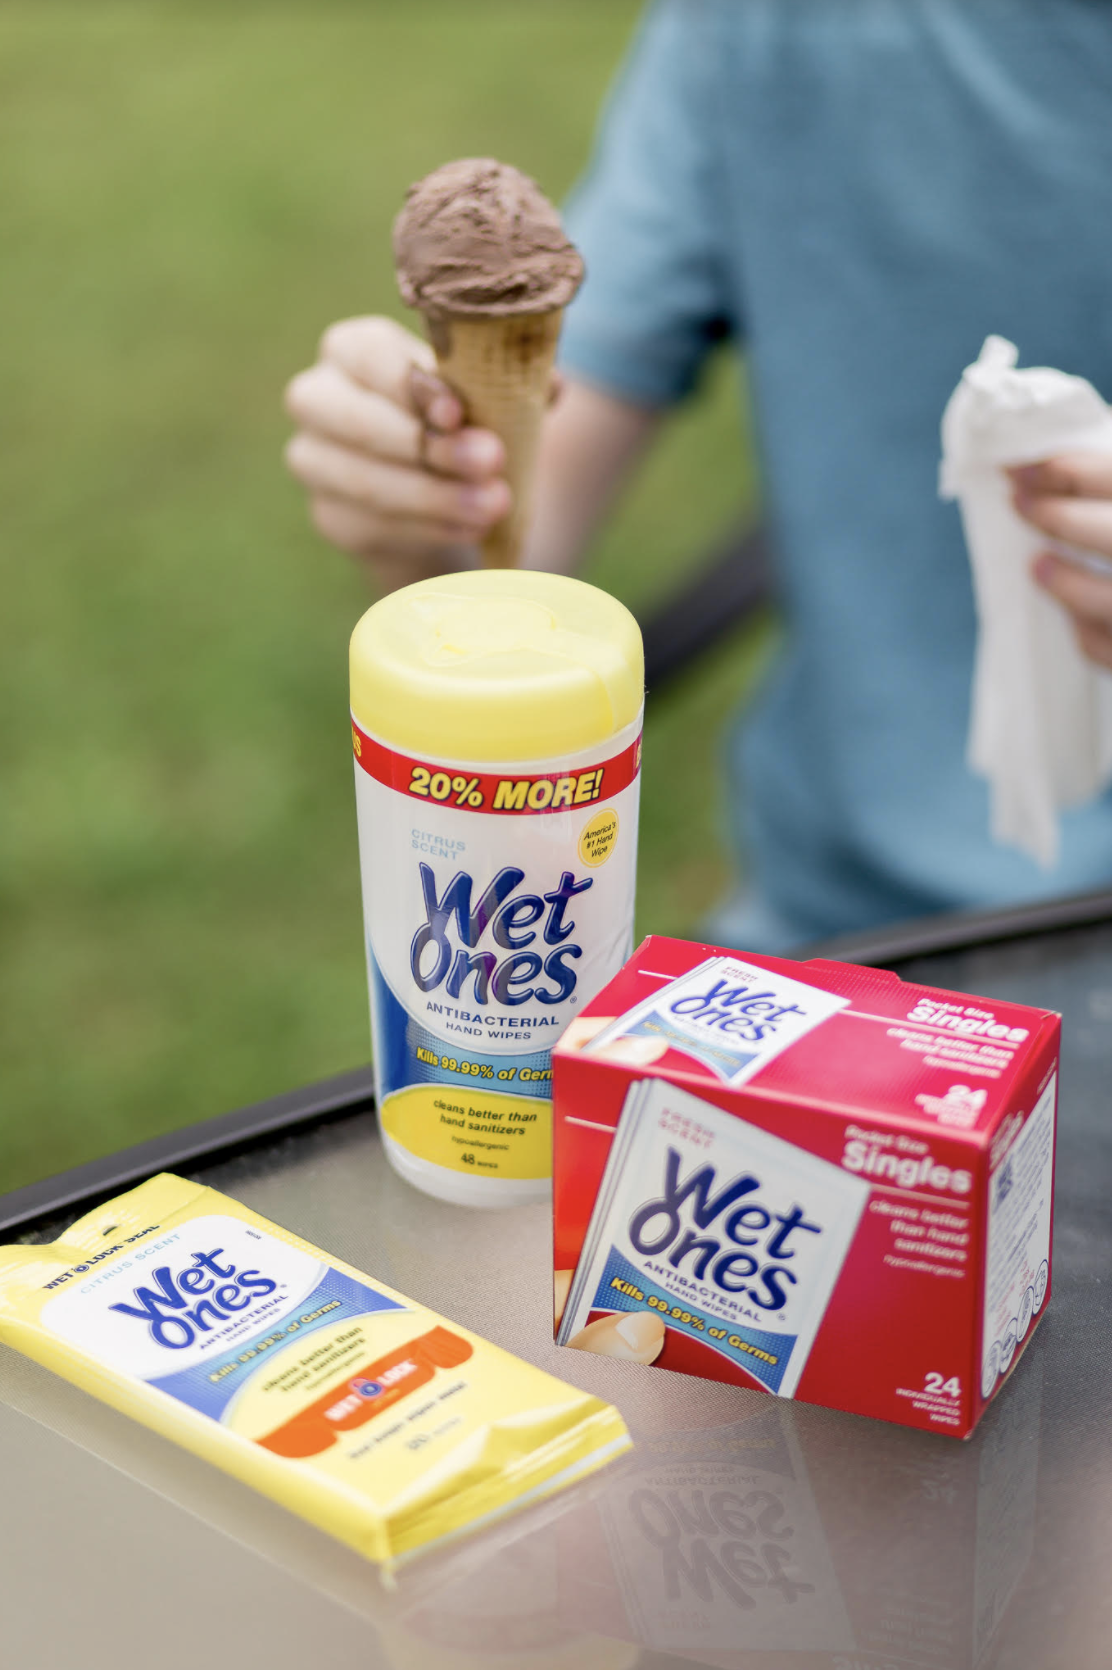 The best part of summer is spending all of this quality time as a family, and knowing that my kids are clean and germ free with Wet Ones Hand Wipes just within reach as we go on all of our adventures!